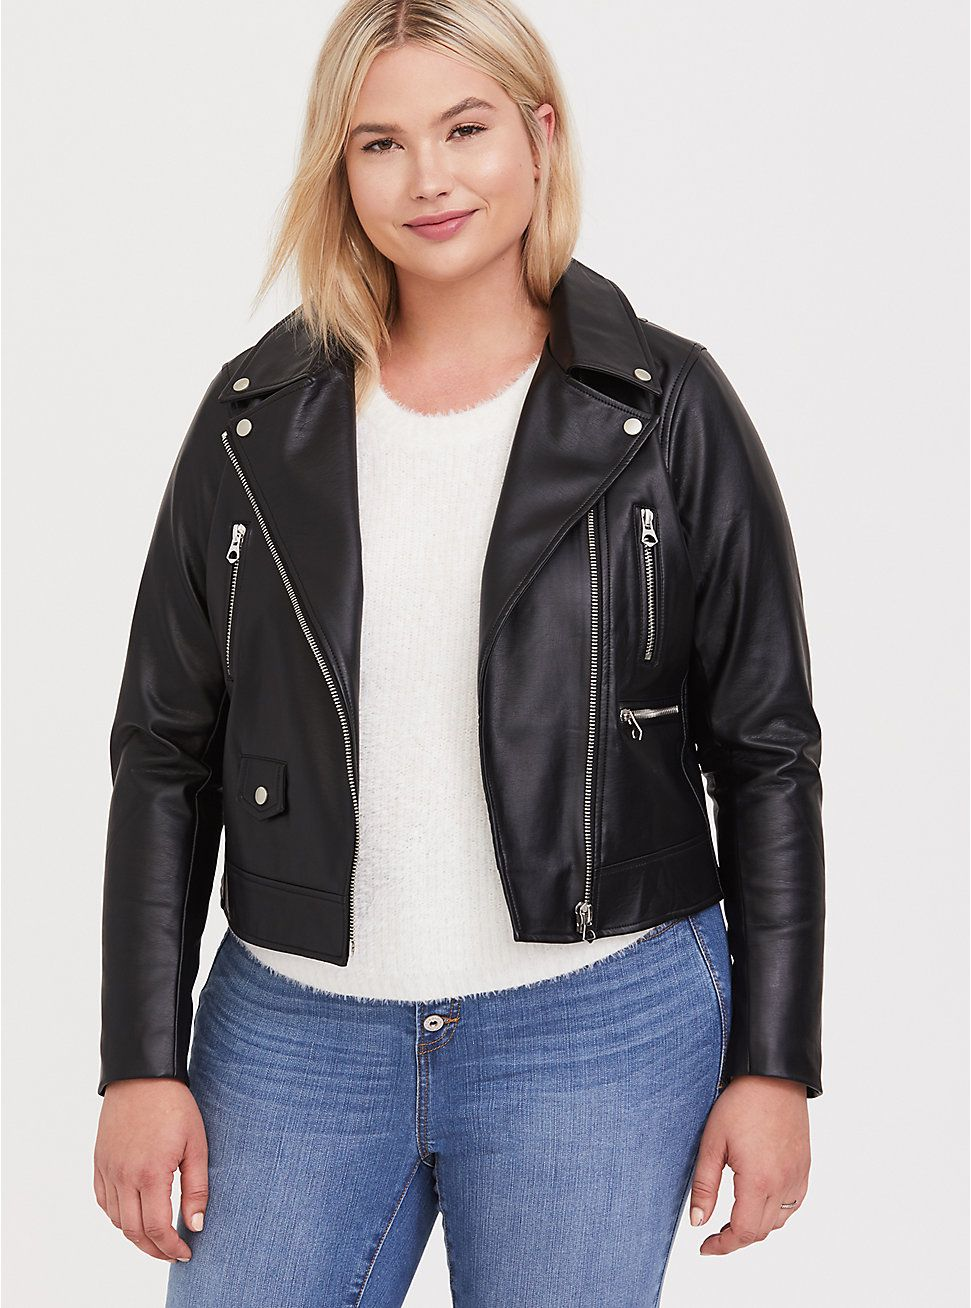 Black Faux Leather Moto Jacket (With images) Black faux